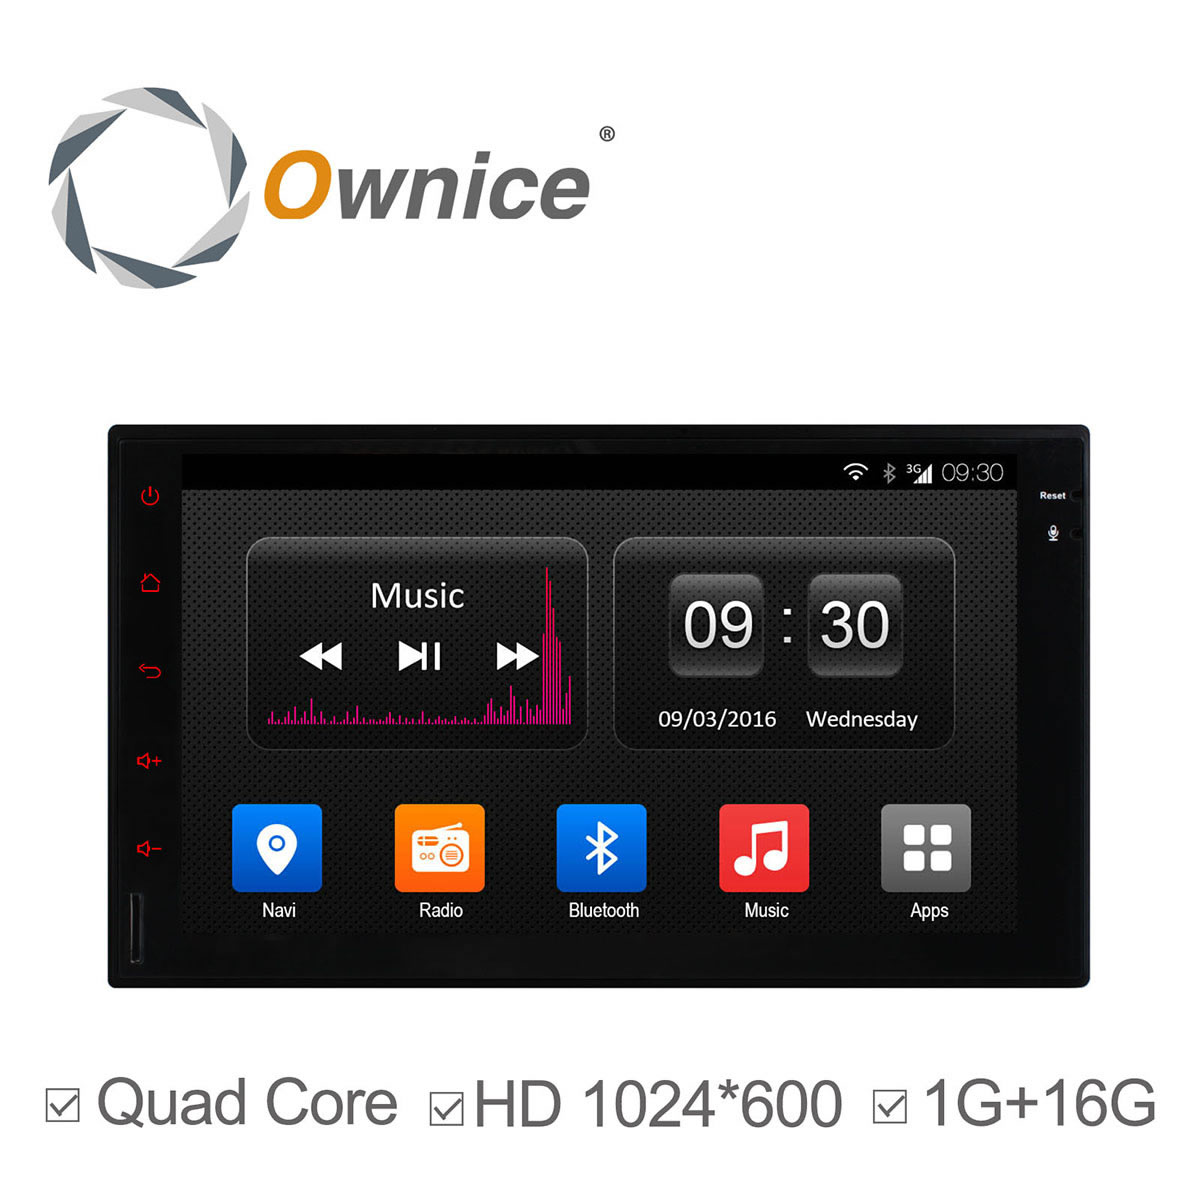 Ownice C300 2 Din Universal Android 4 4 Full Touch Panel GPS Navigation Car Radio Player